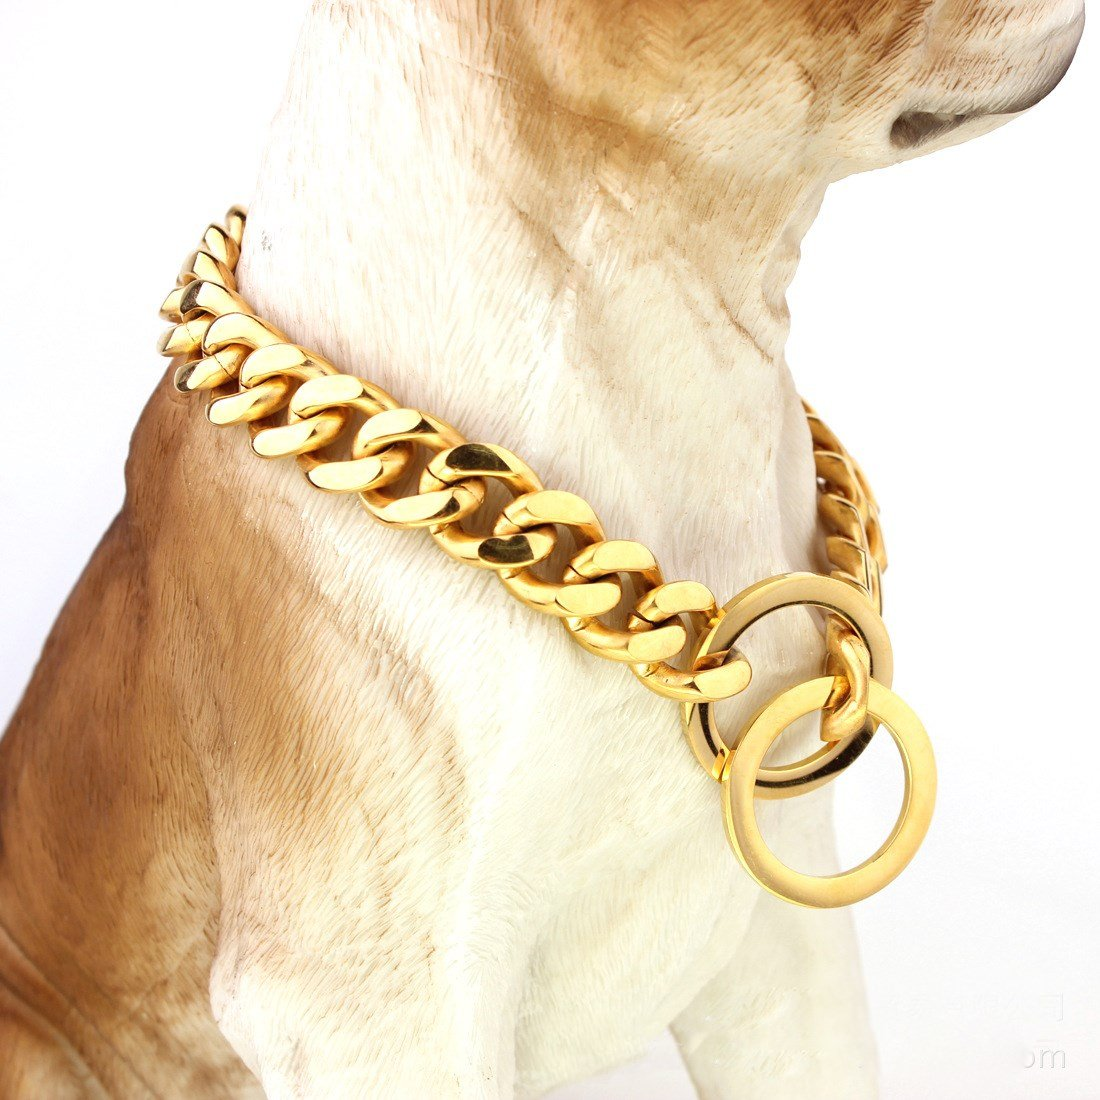 26 inch Pet Online Dog collar mirror polished stainless steel p chain vacuum metallizing titanium steel chain necklace pet dog training leash Tow Collar 15mm gold, 26 inch